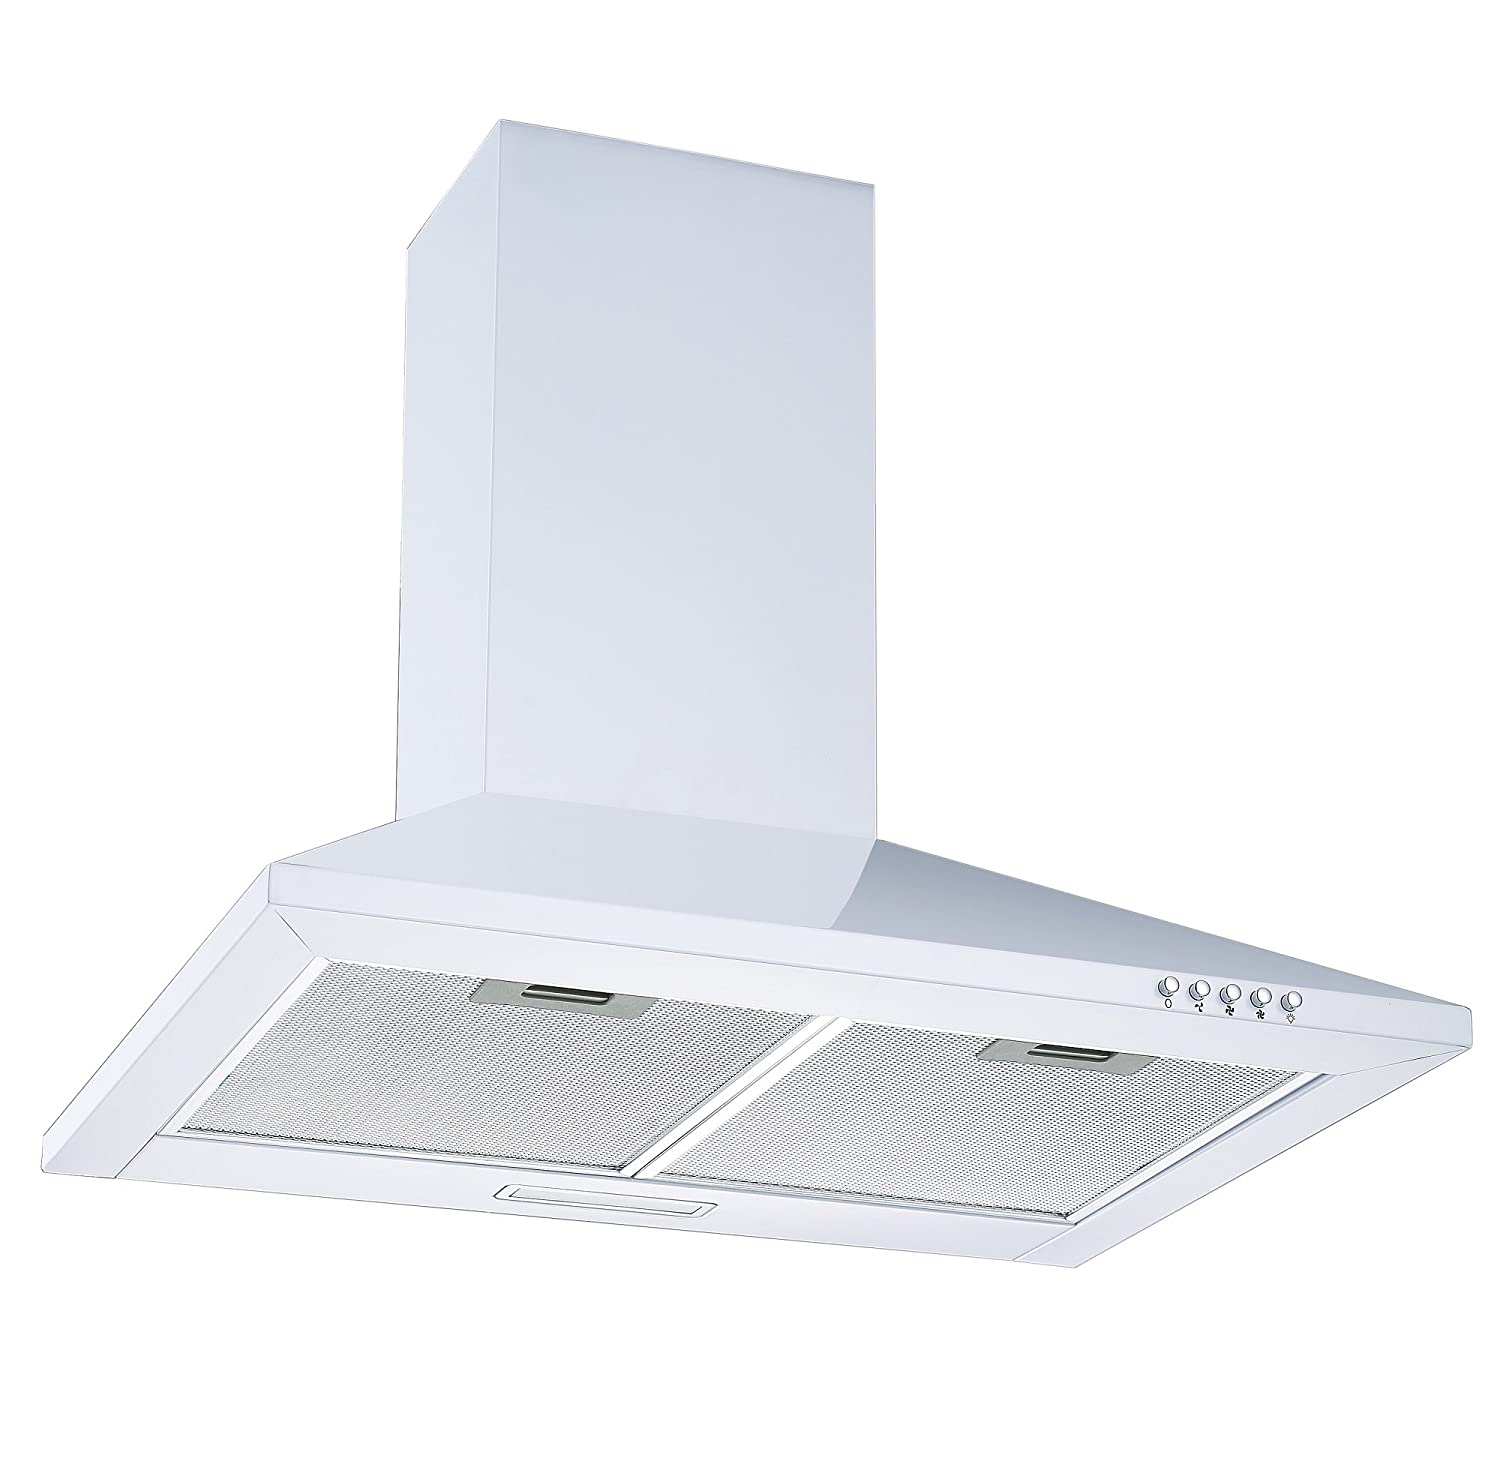 White 60cm Chimney Cooker Hood | Cookology CH600WH Unbranded Extractor Fan in White